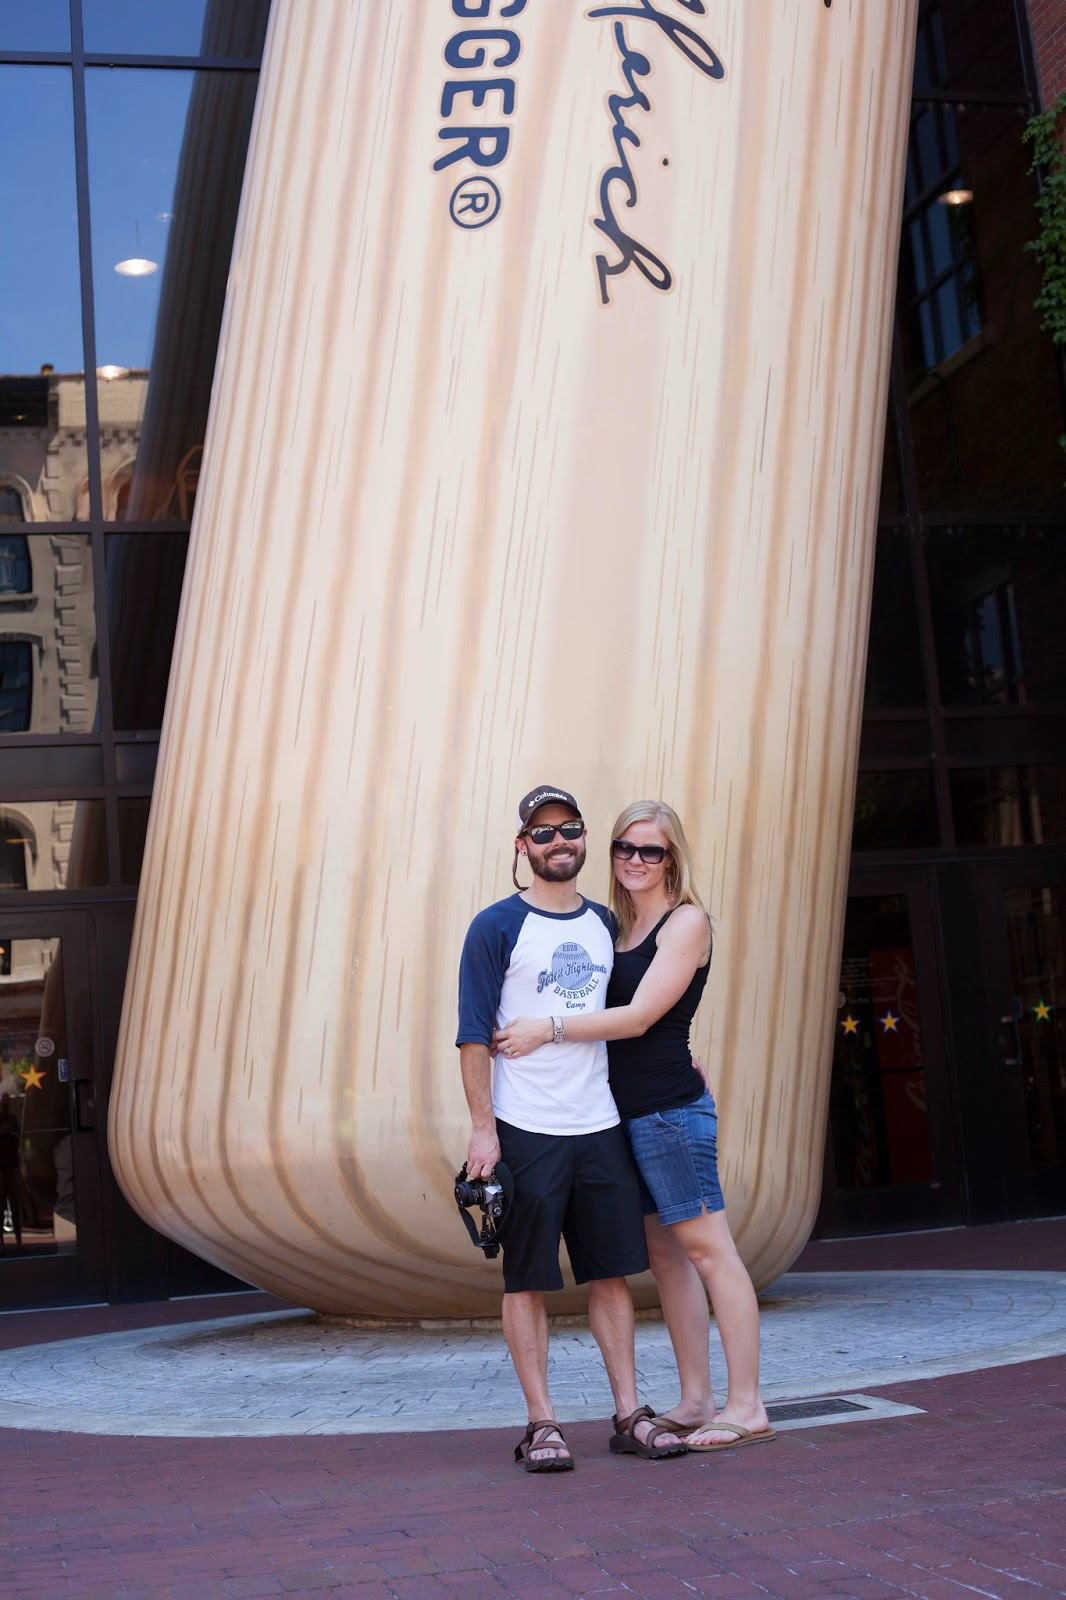 Downtown Louisville Slugger Museum